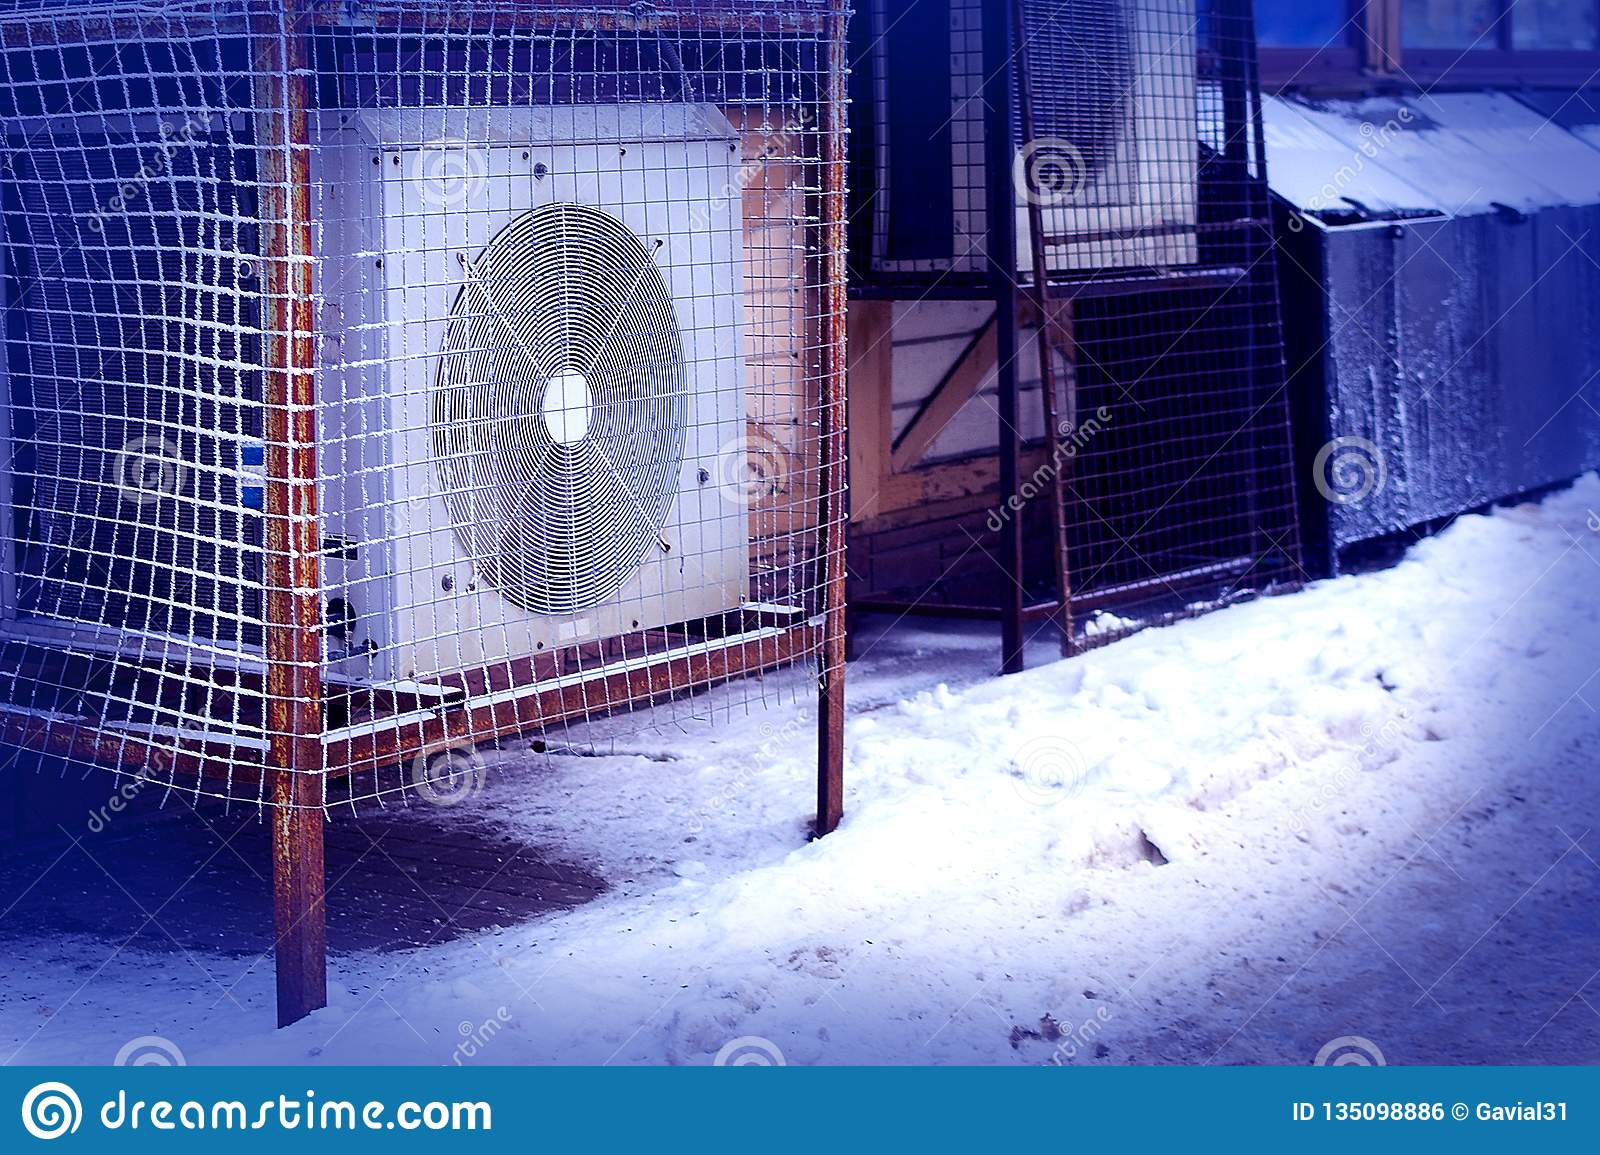 Industrial air conditioner stands outside